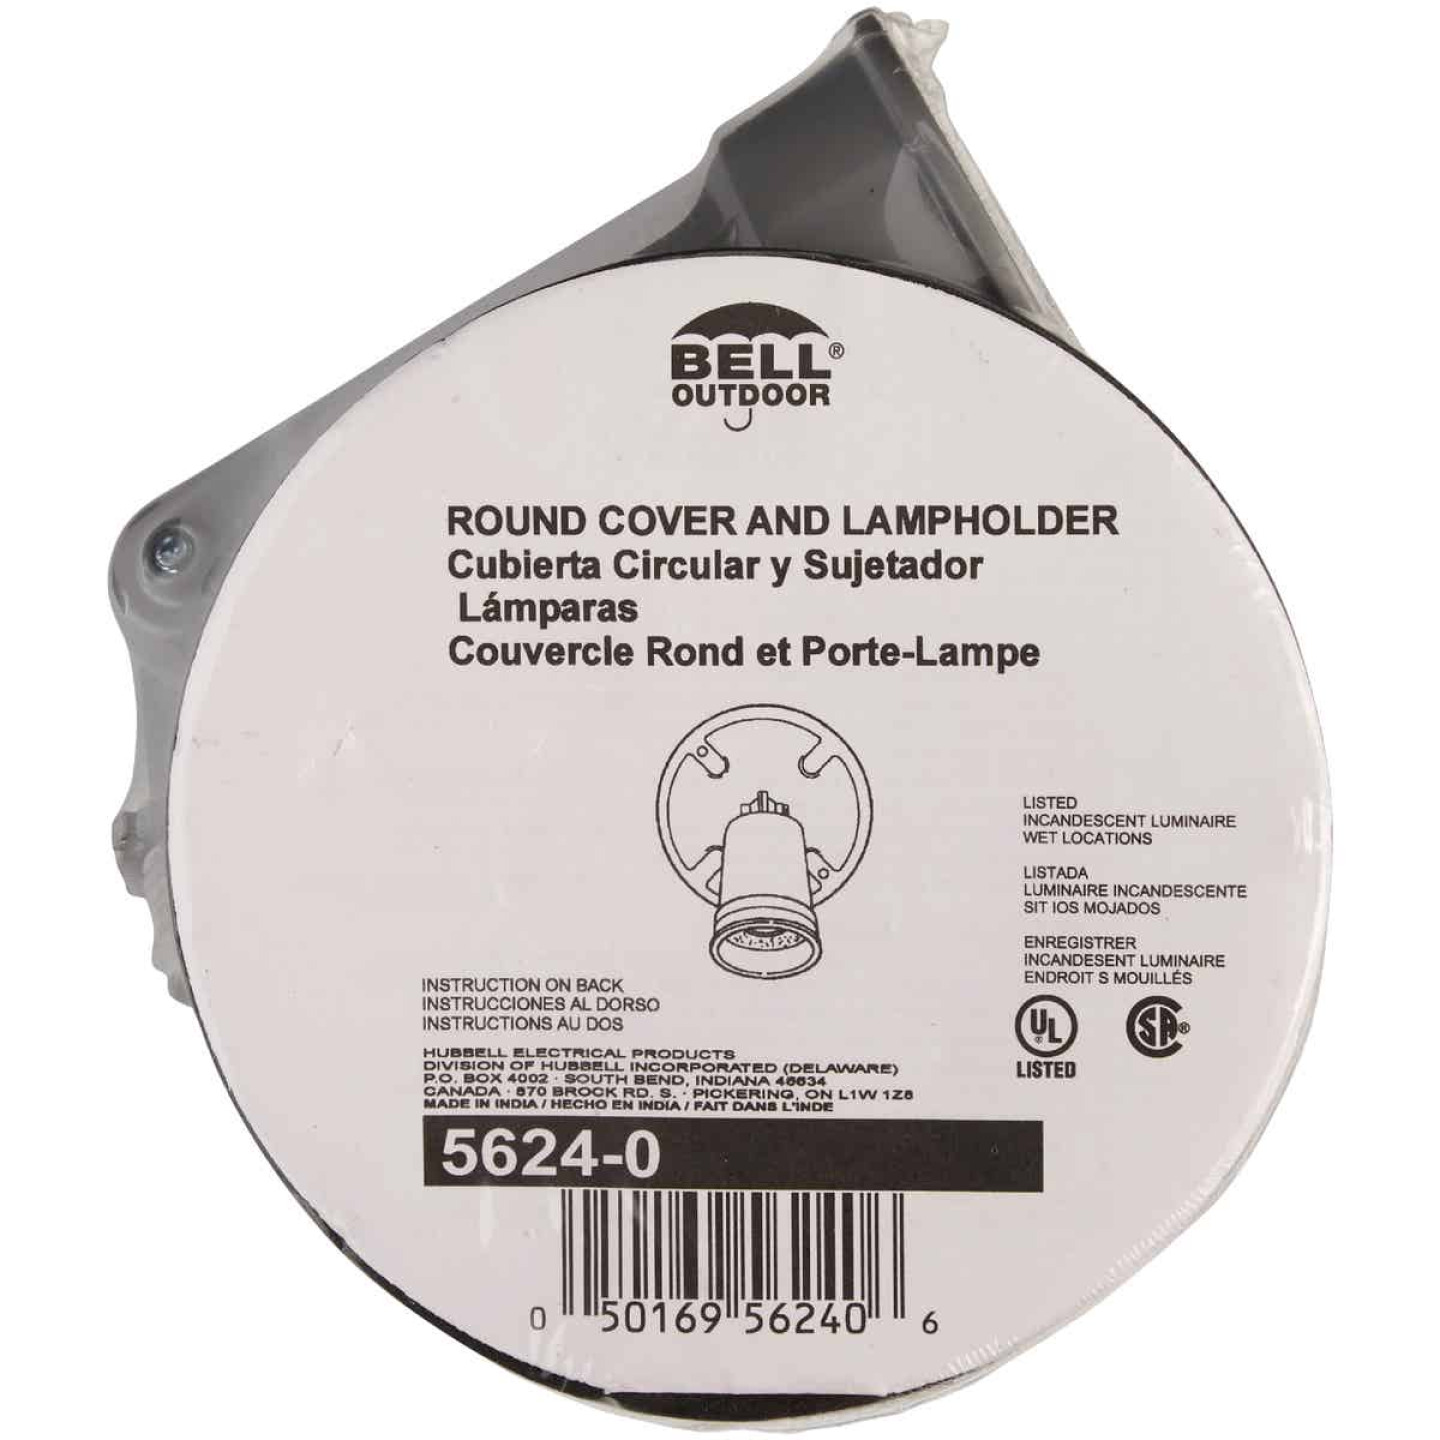 Bell Gray 150W Die-Cast Metal Round Weatherproof Single Outdoor Lampholder with Cover Image 2